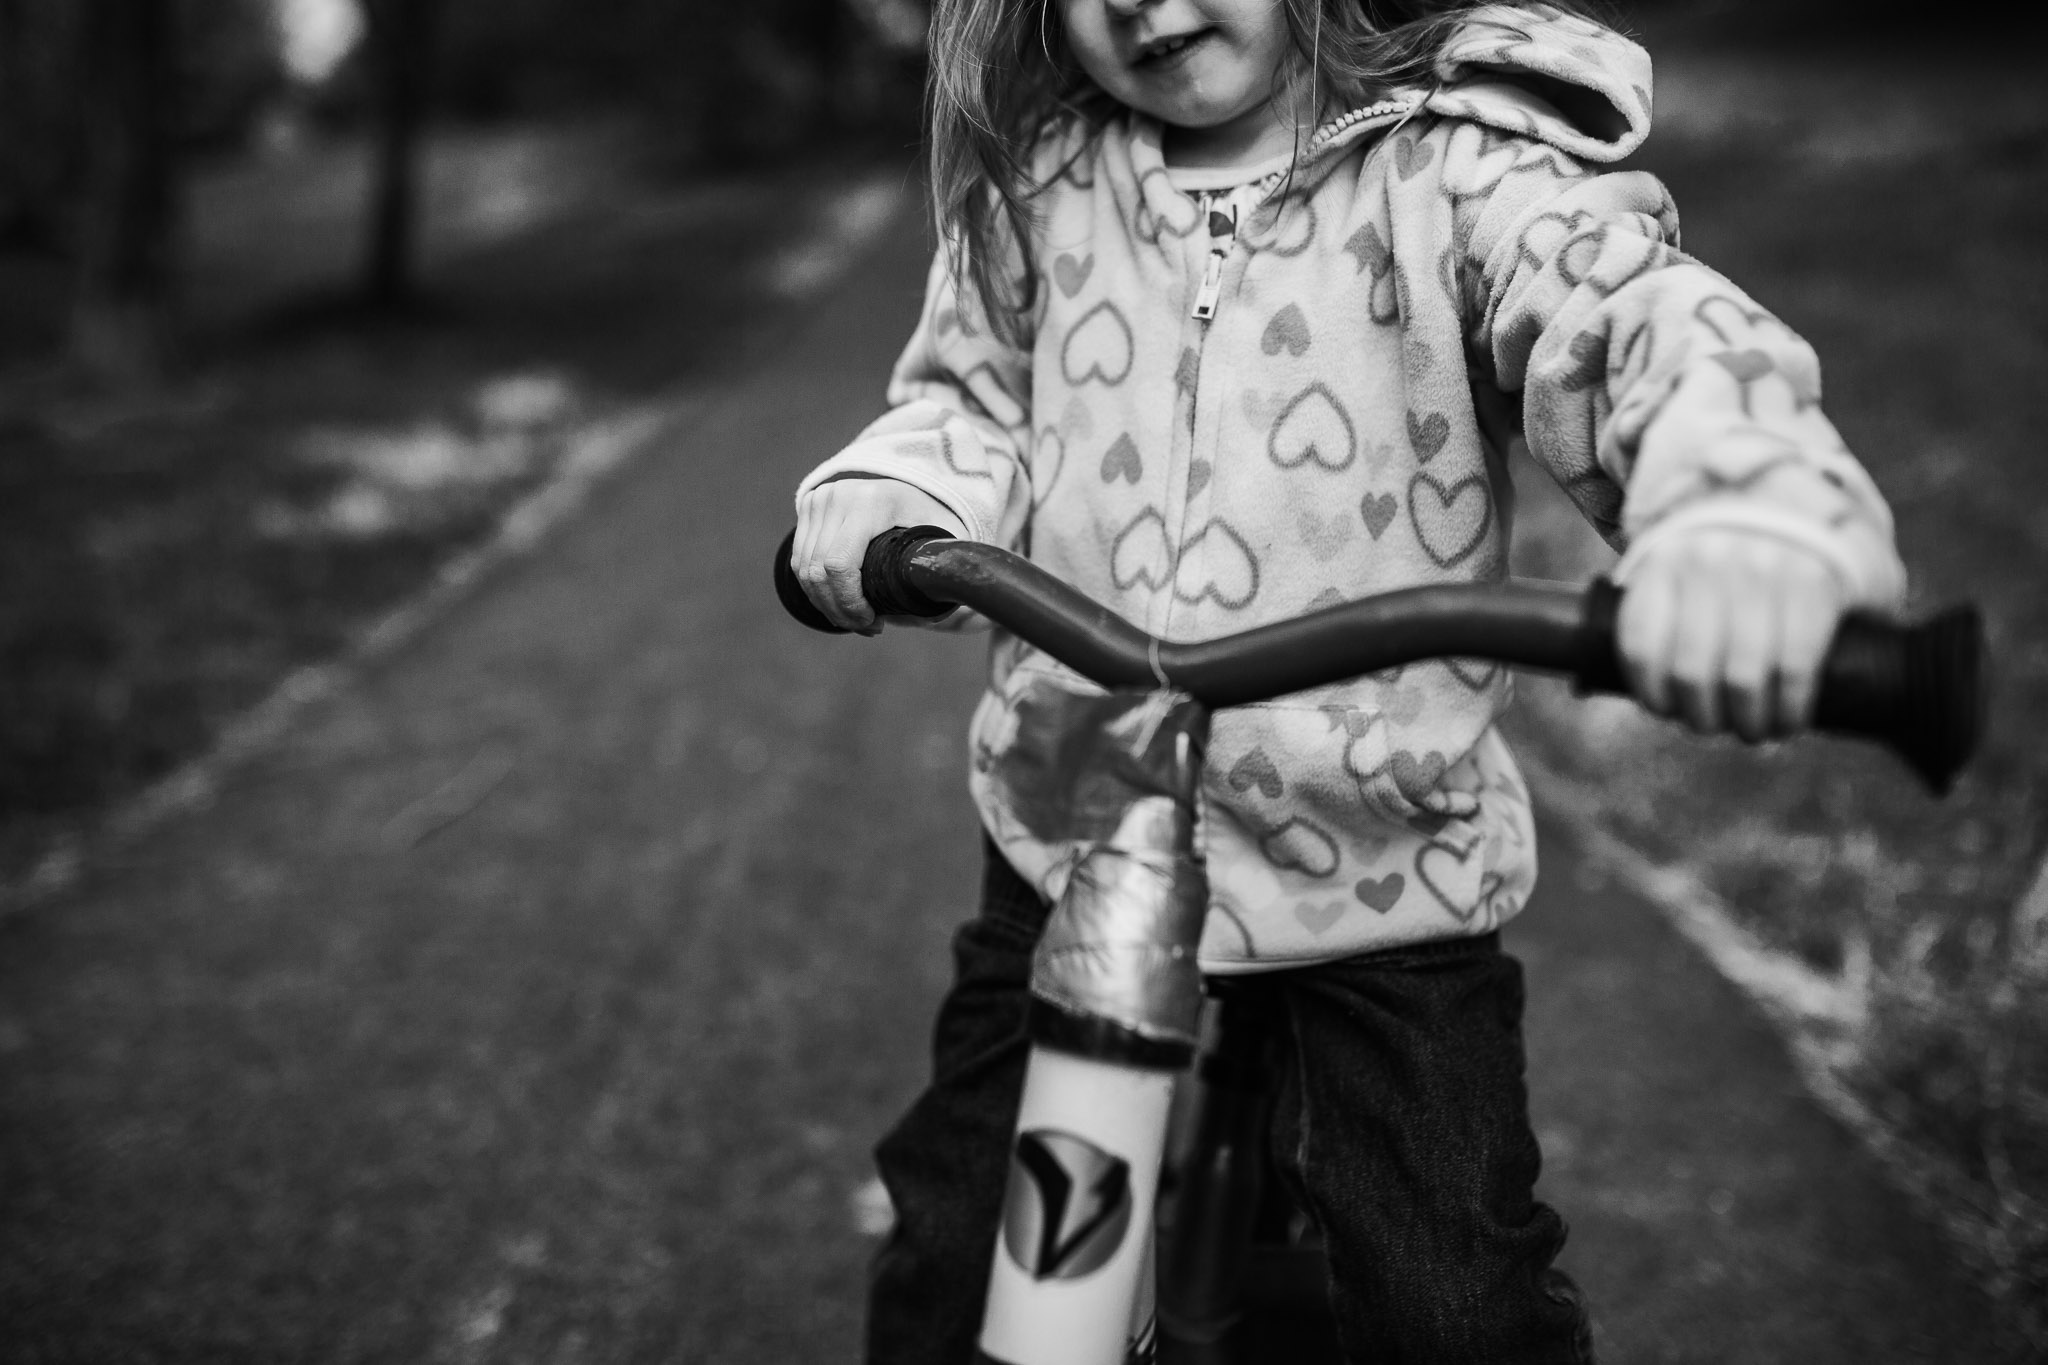 Black and white close up of a girl in a heart hoodie riding a bike in Ashburn, Virginia